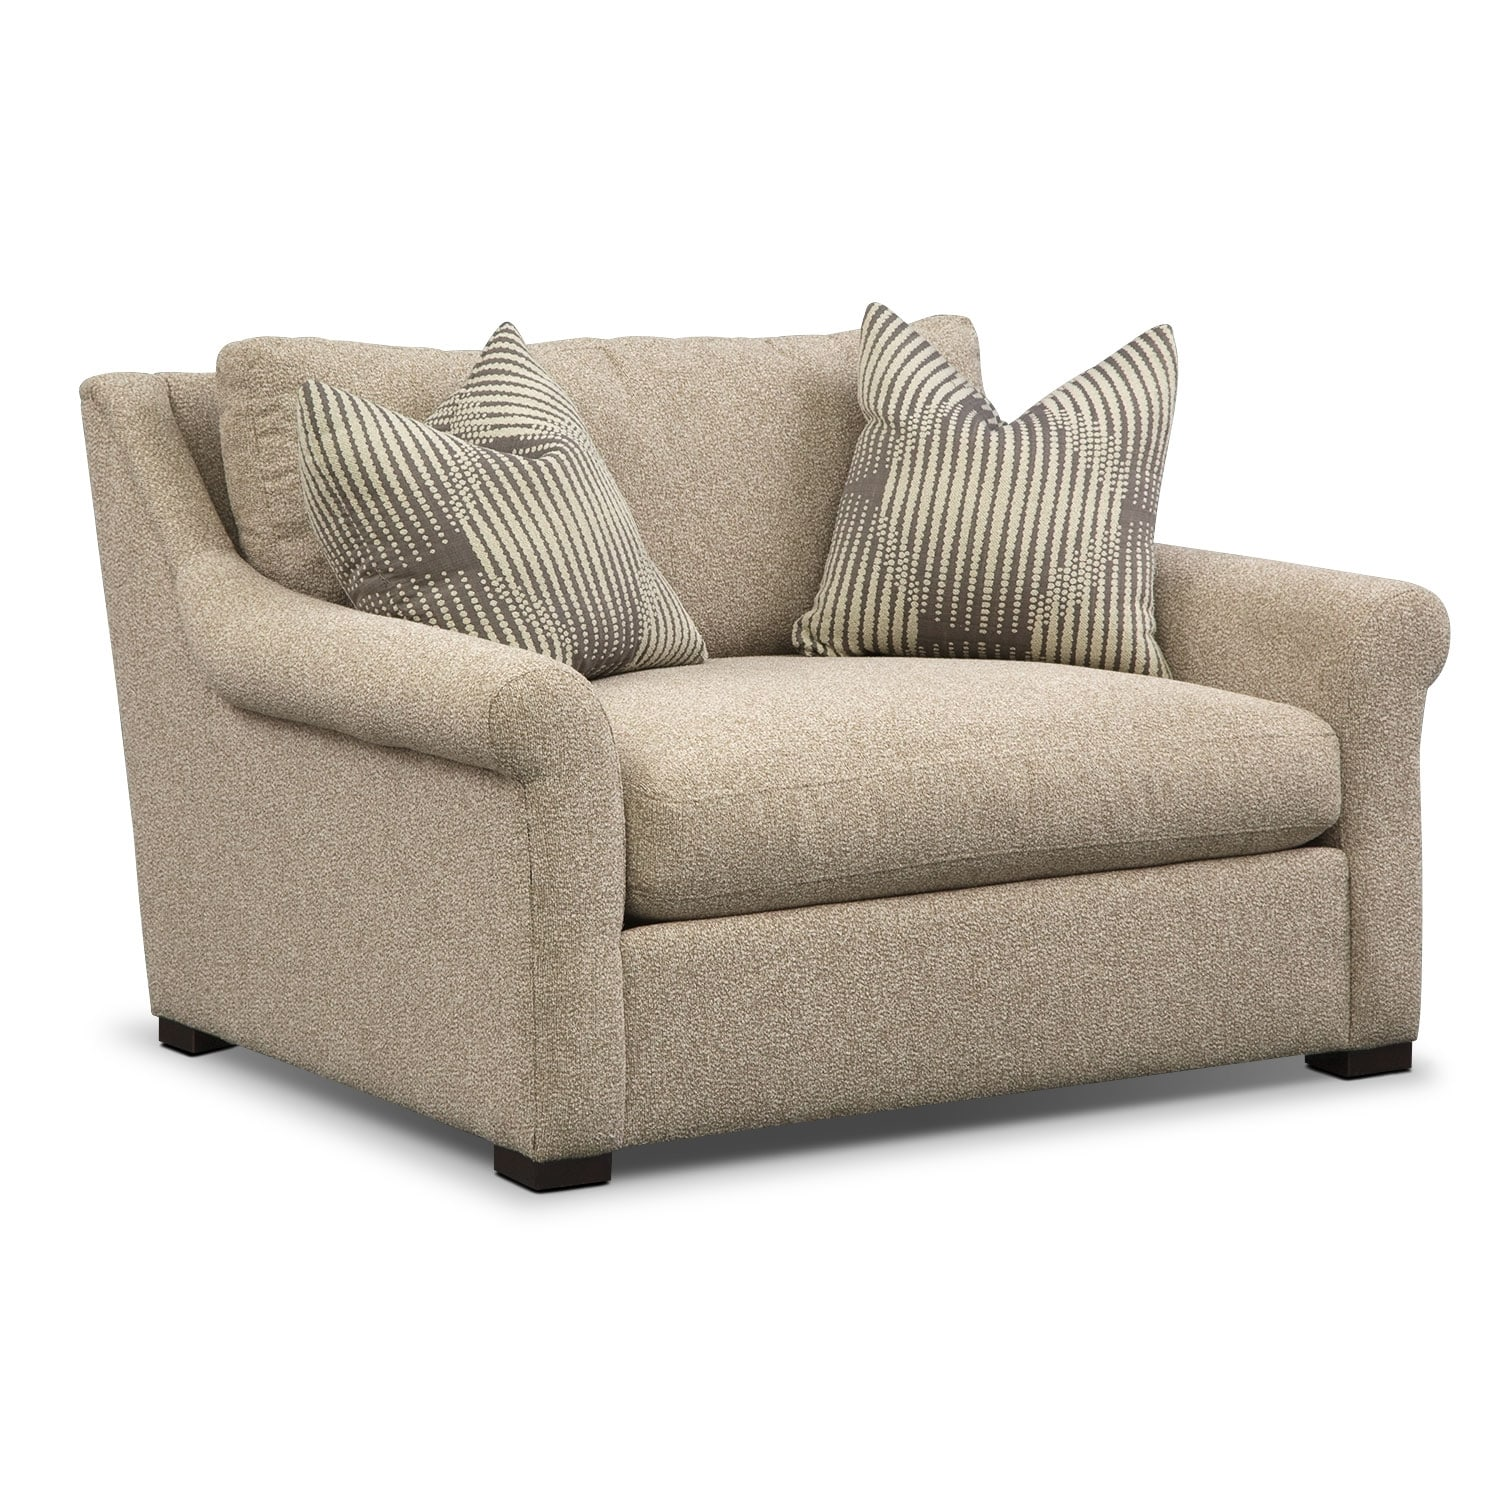 Roberston Cumulus Sofa Loveseat and Chair and a Half Set Beige